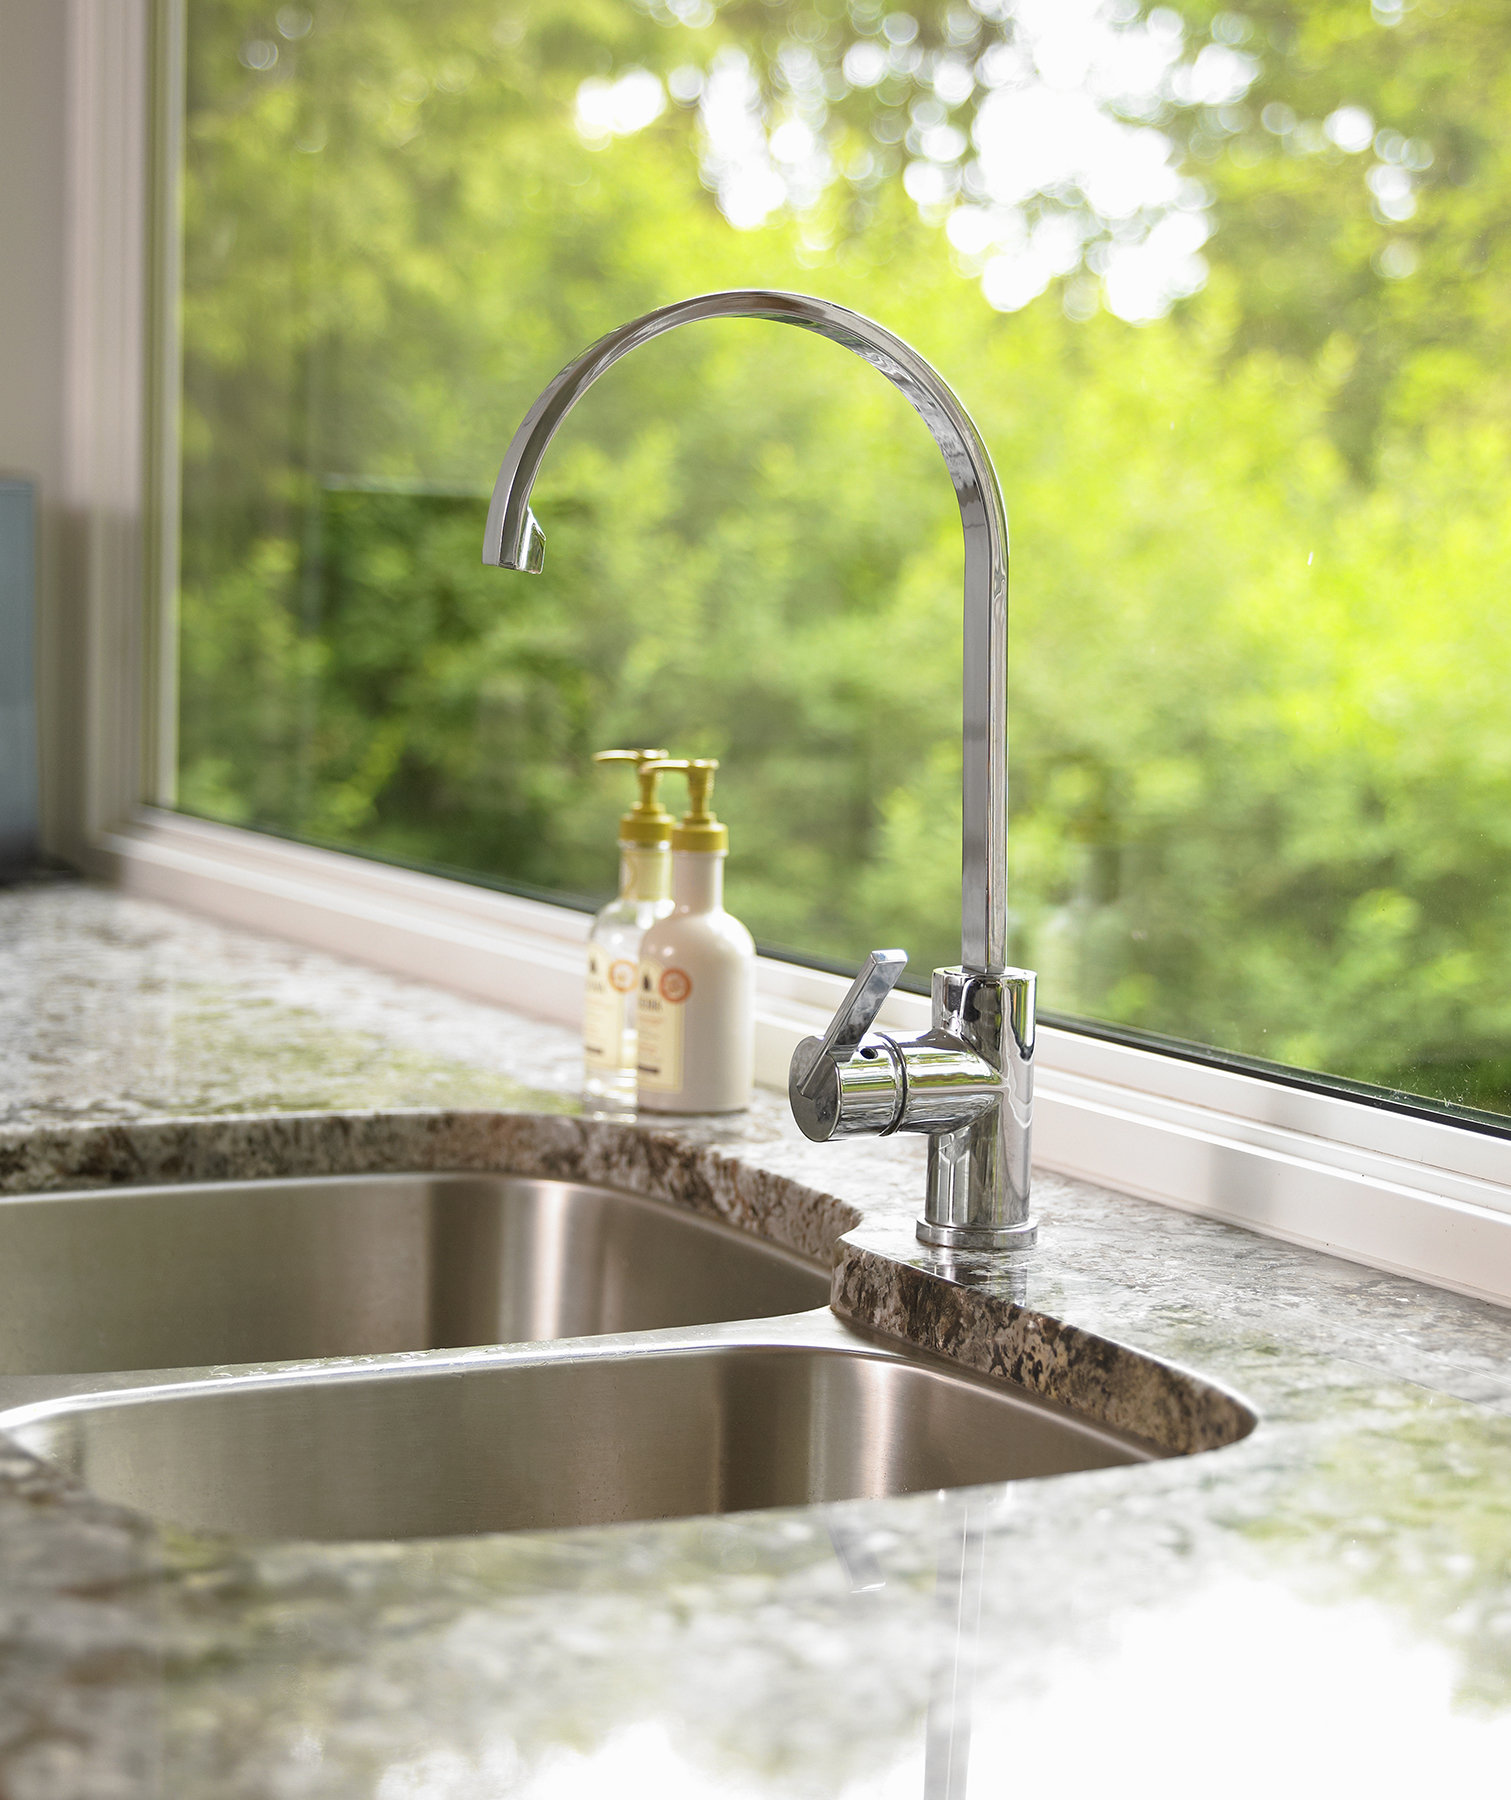 Kitchen Sink Etiquette: Around The Sink And Faucet